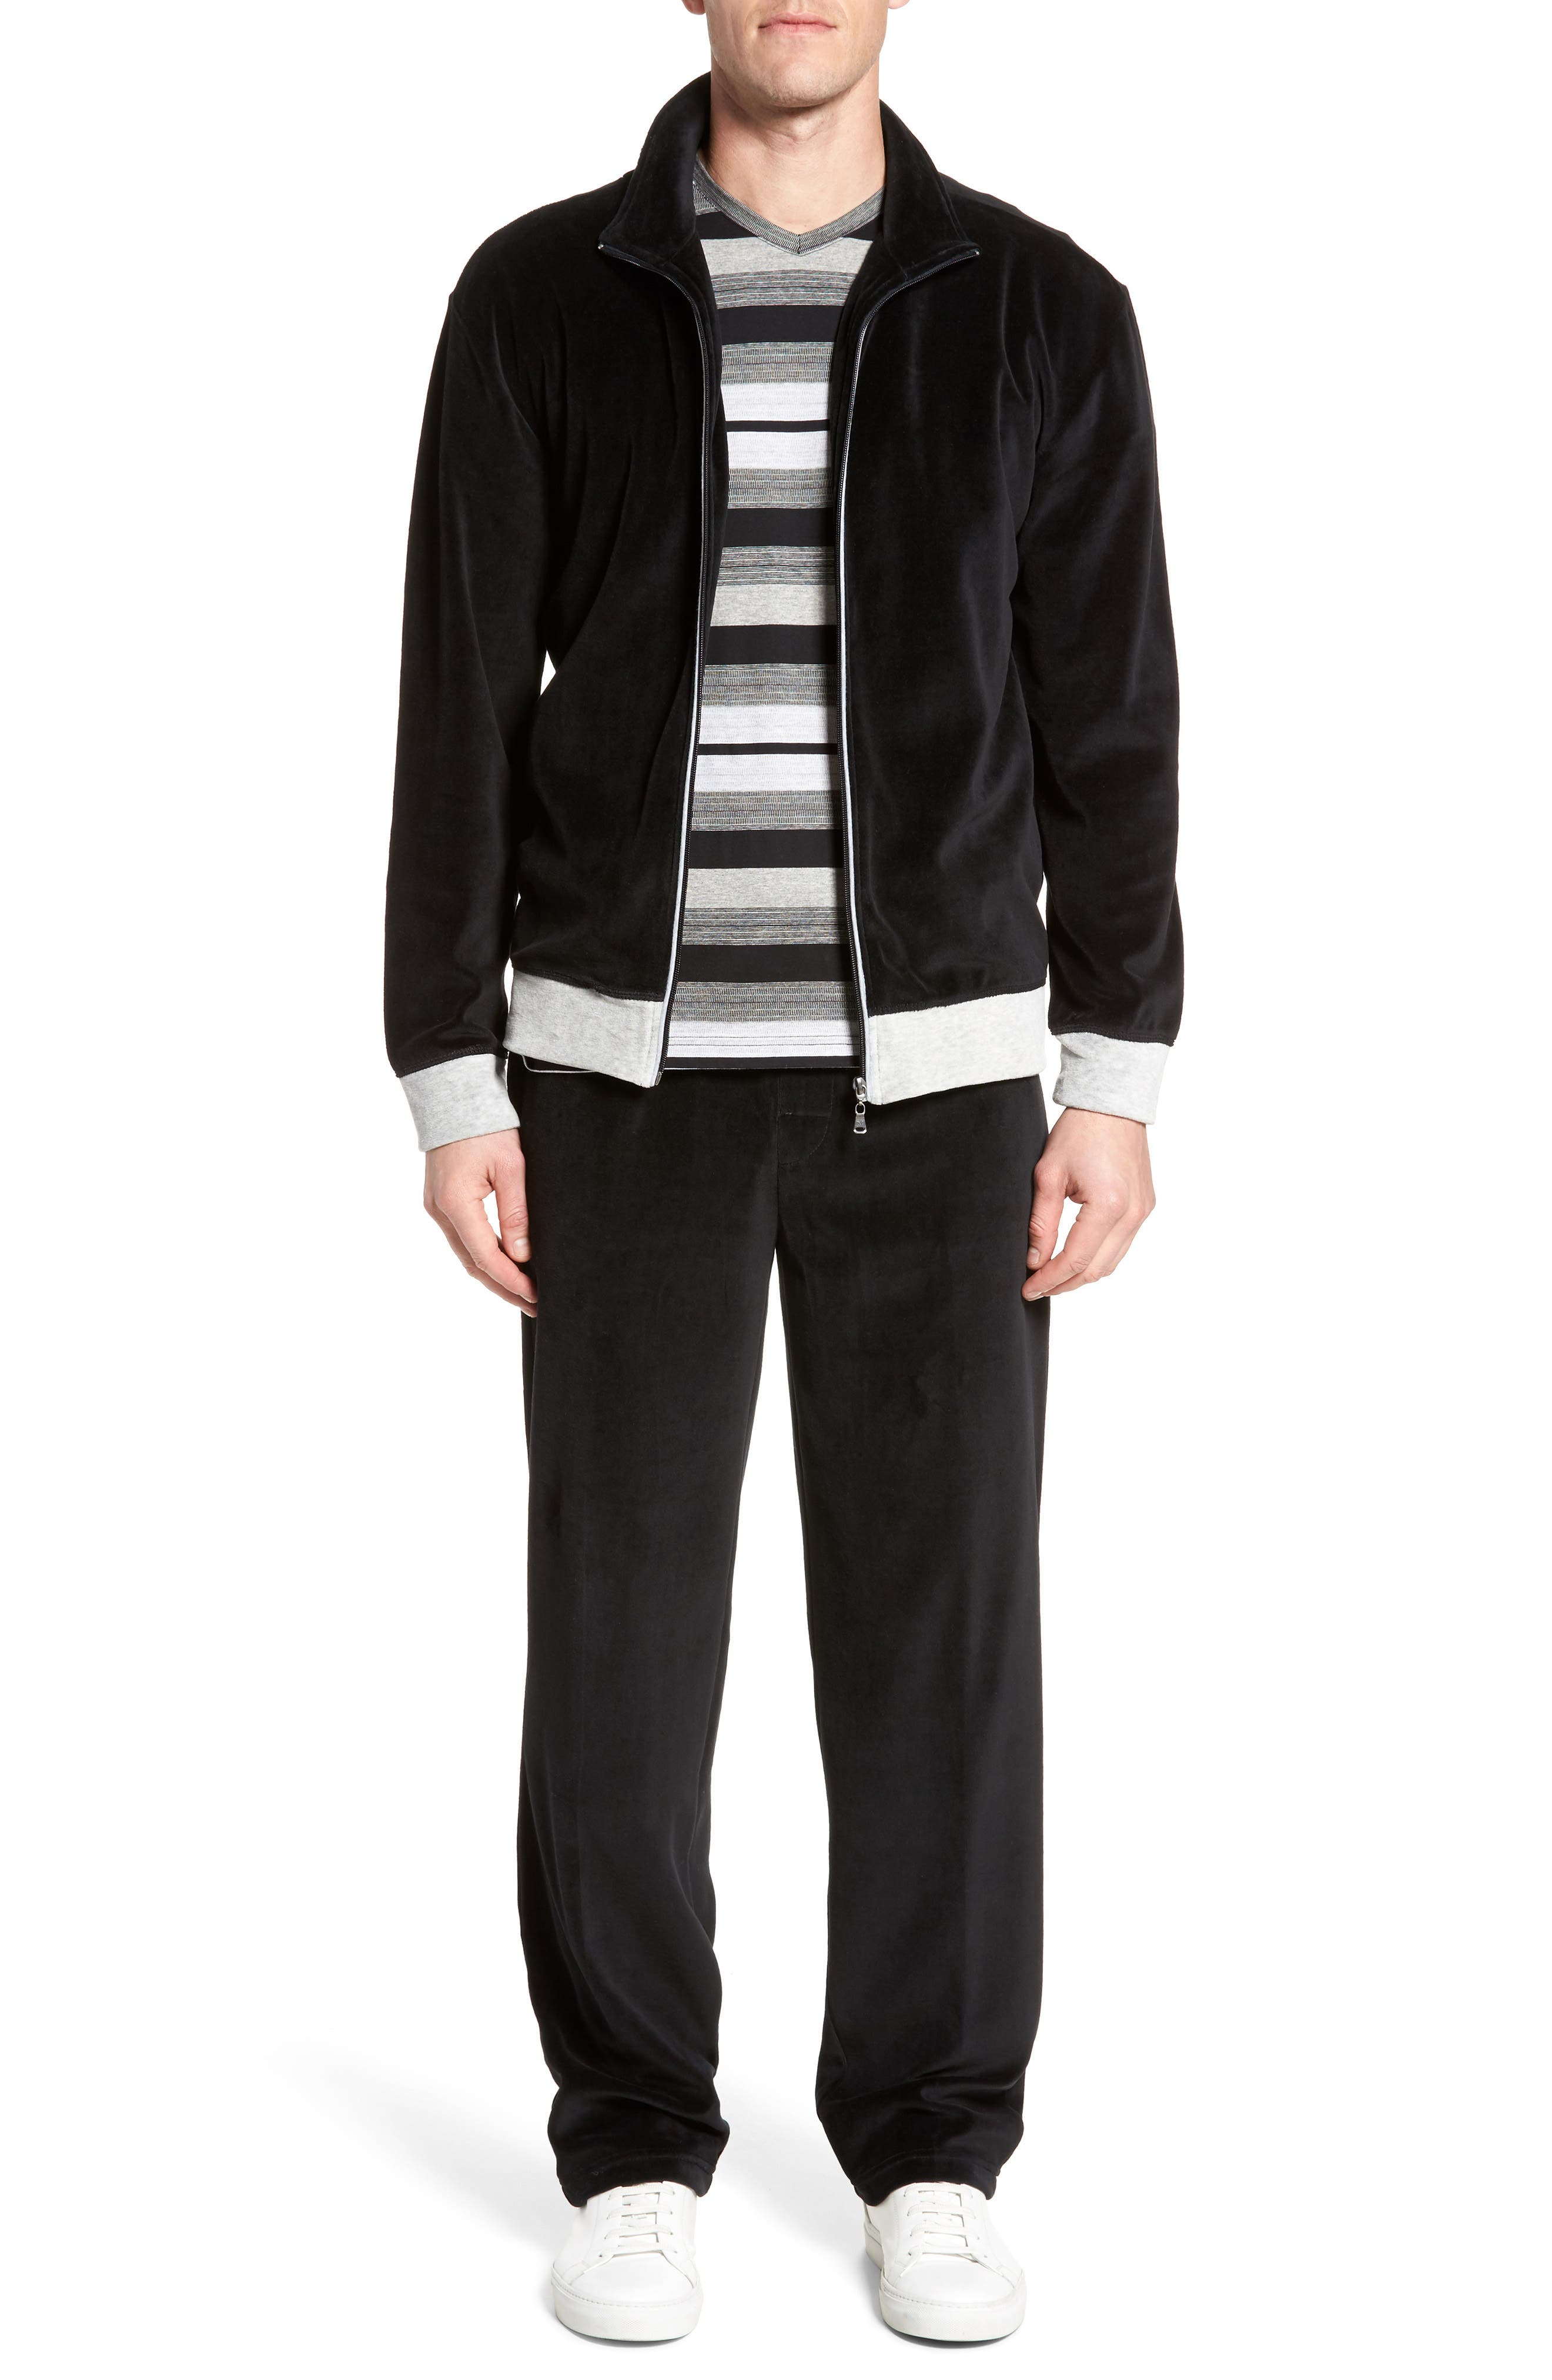 Strathcona Velour Warm-Up Suit,                         Main,                         color, 001